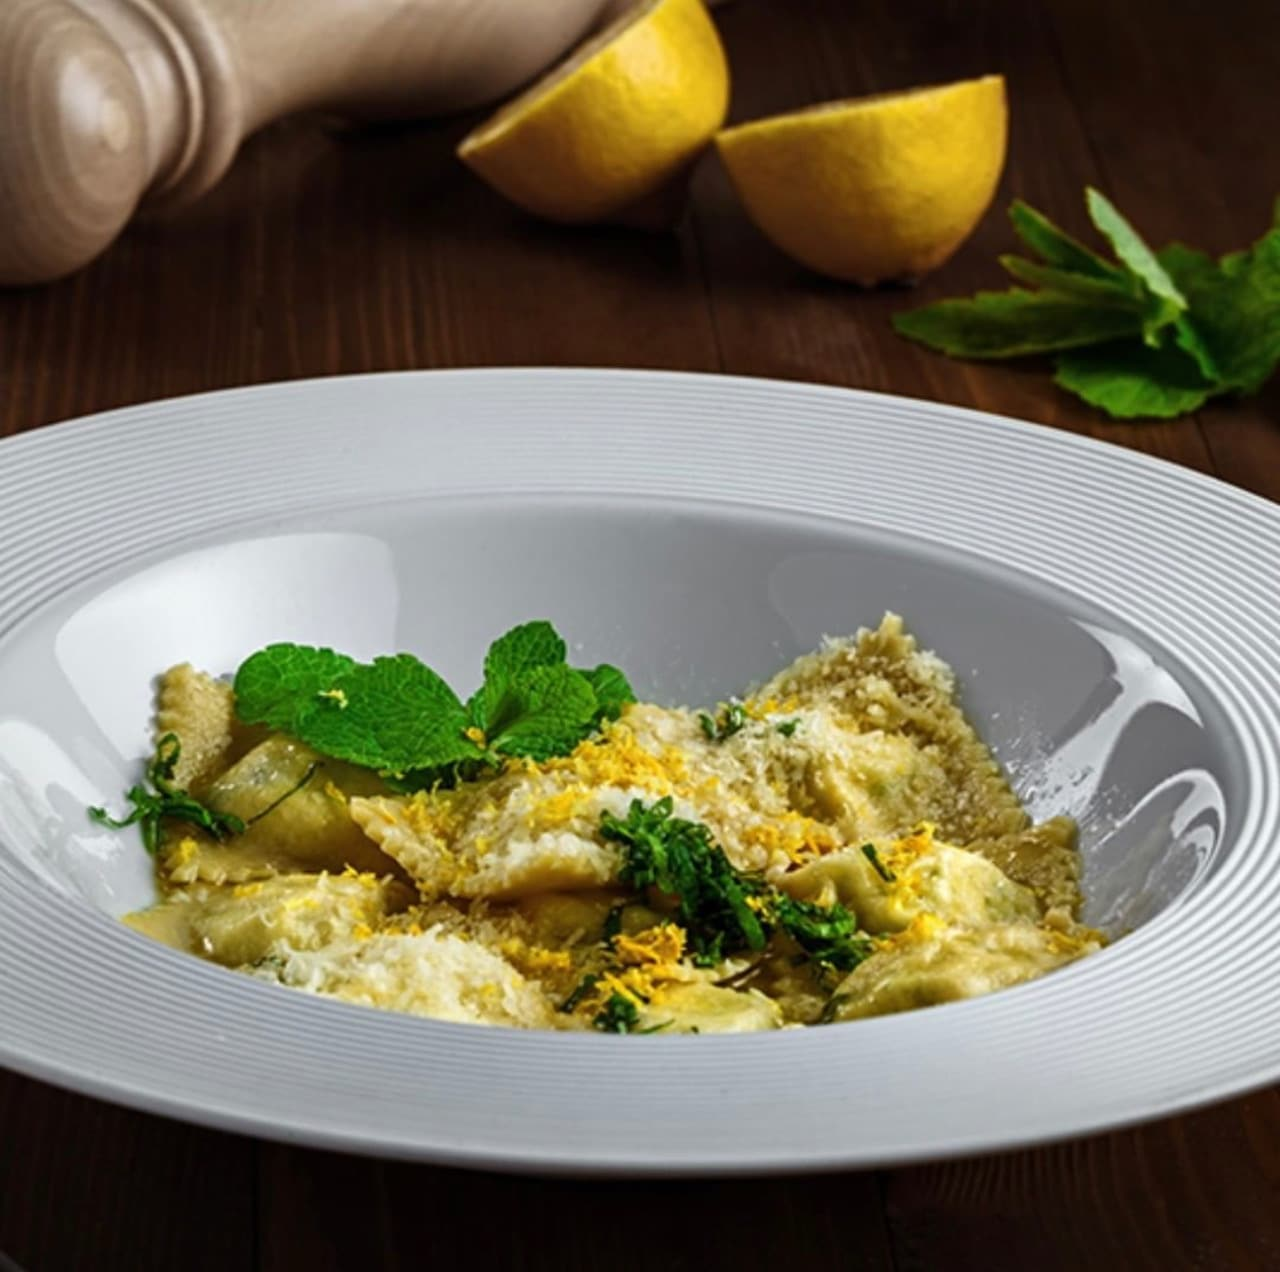 white plate with cooked ravioli